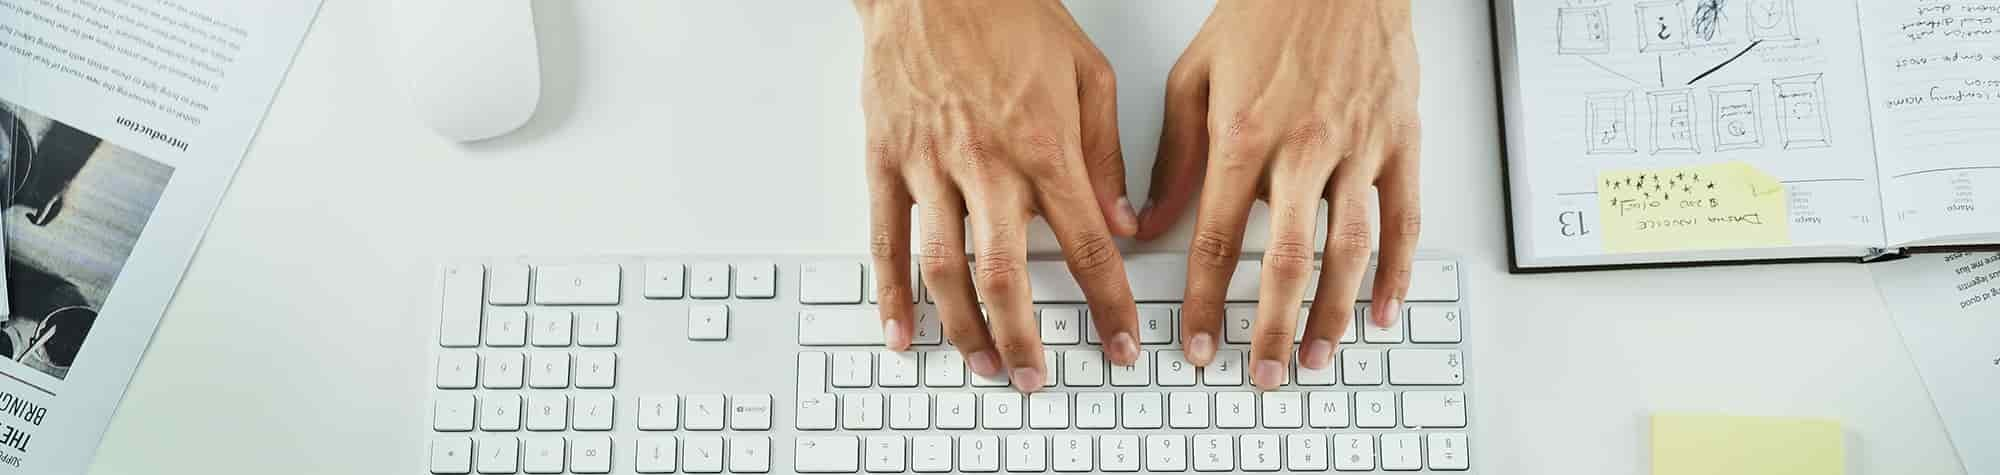 Search Consultancy's Main Blog Page Header Image. Featuring Male Hands Typing On A Laptop Keyboard.